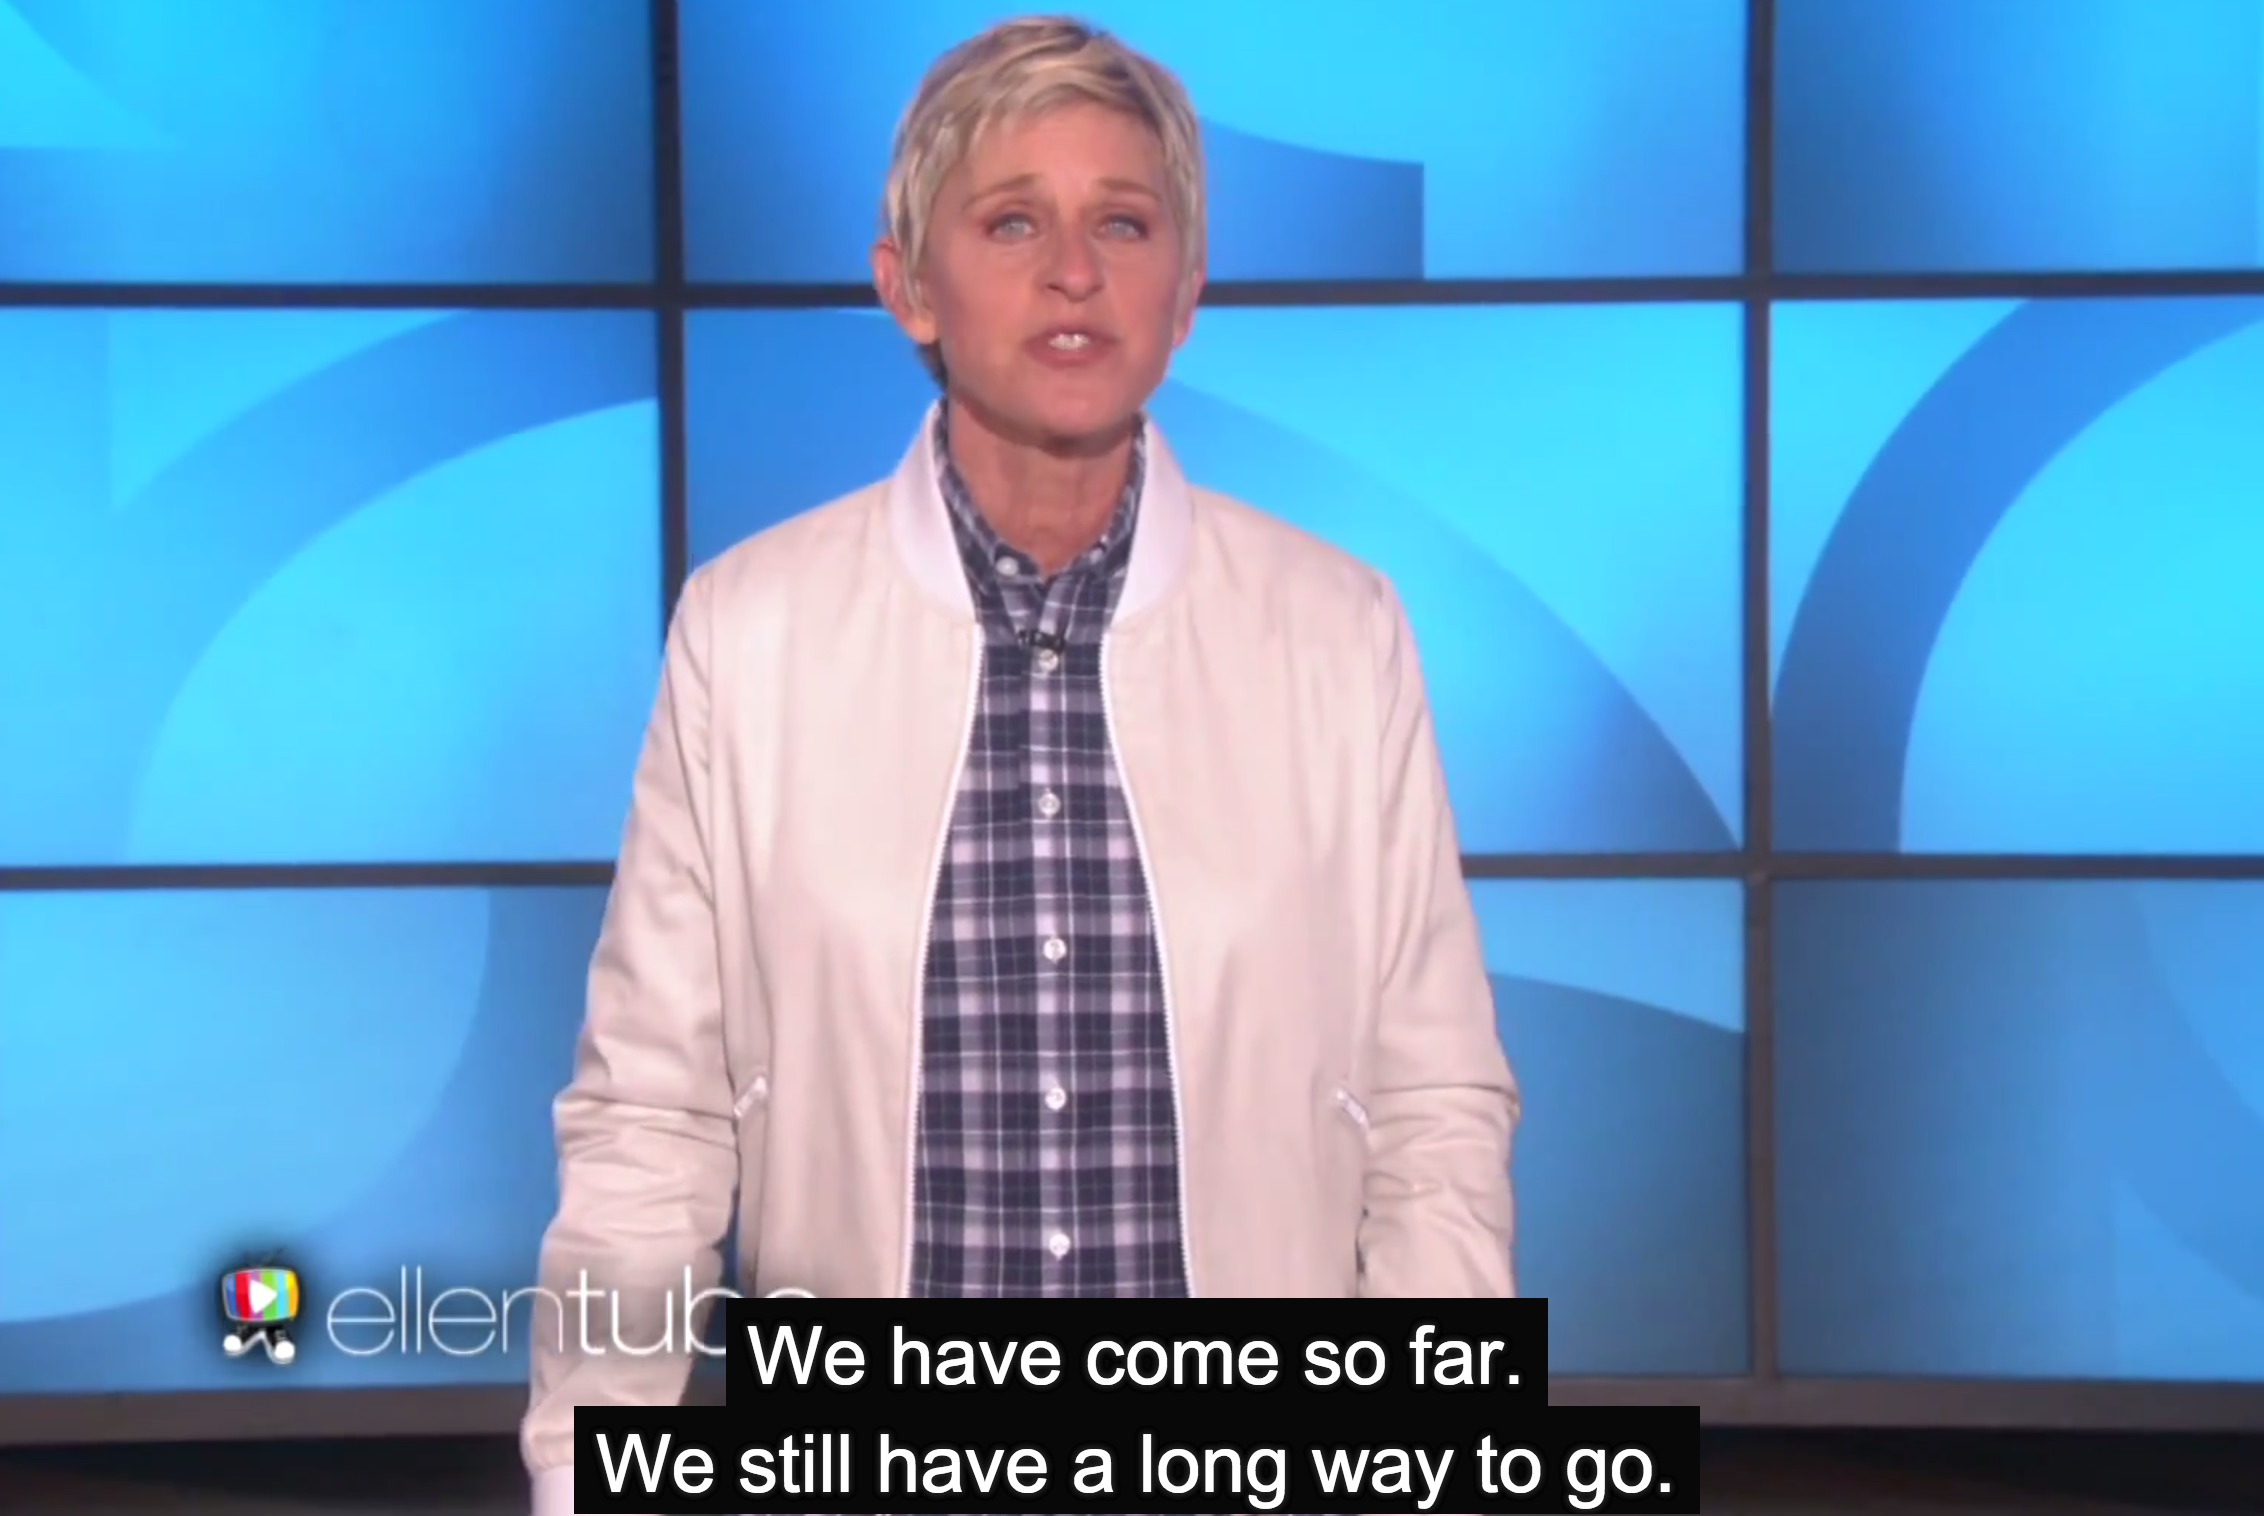 Here's Ellen, perfectly explaining why a woman should be on the $20 bill